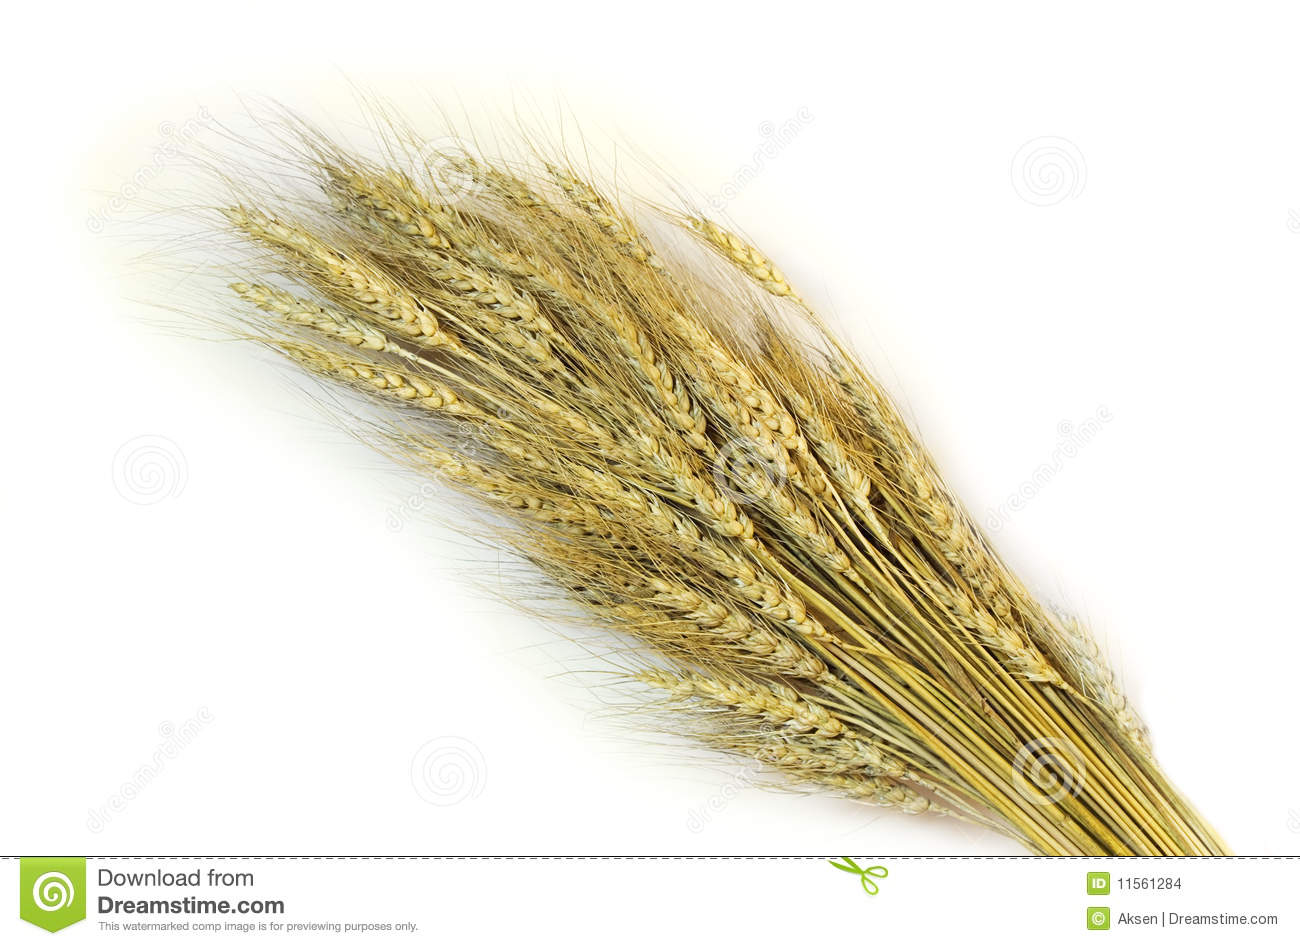 Sheaf from wheat ears on a white background.